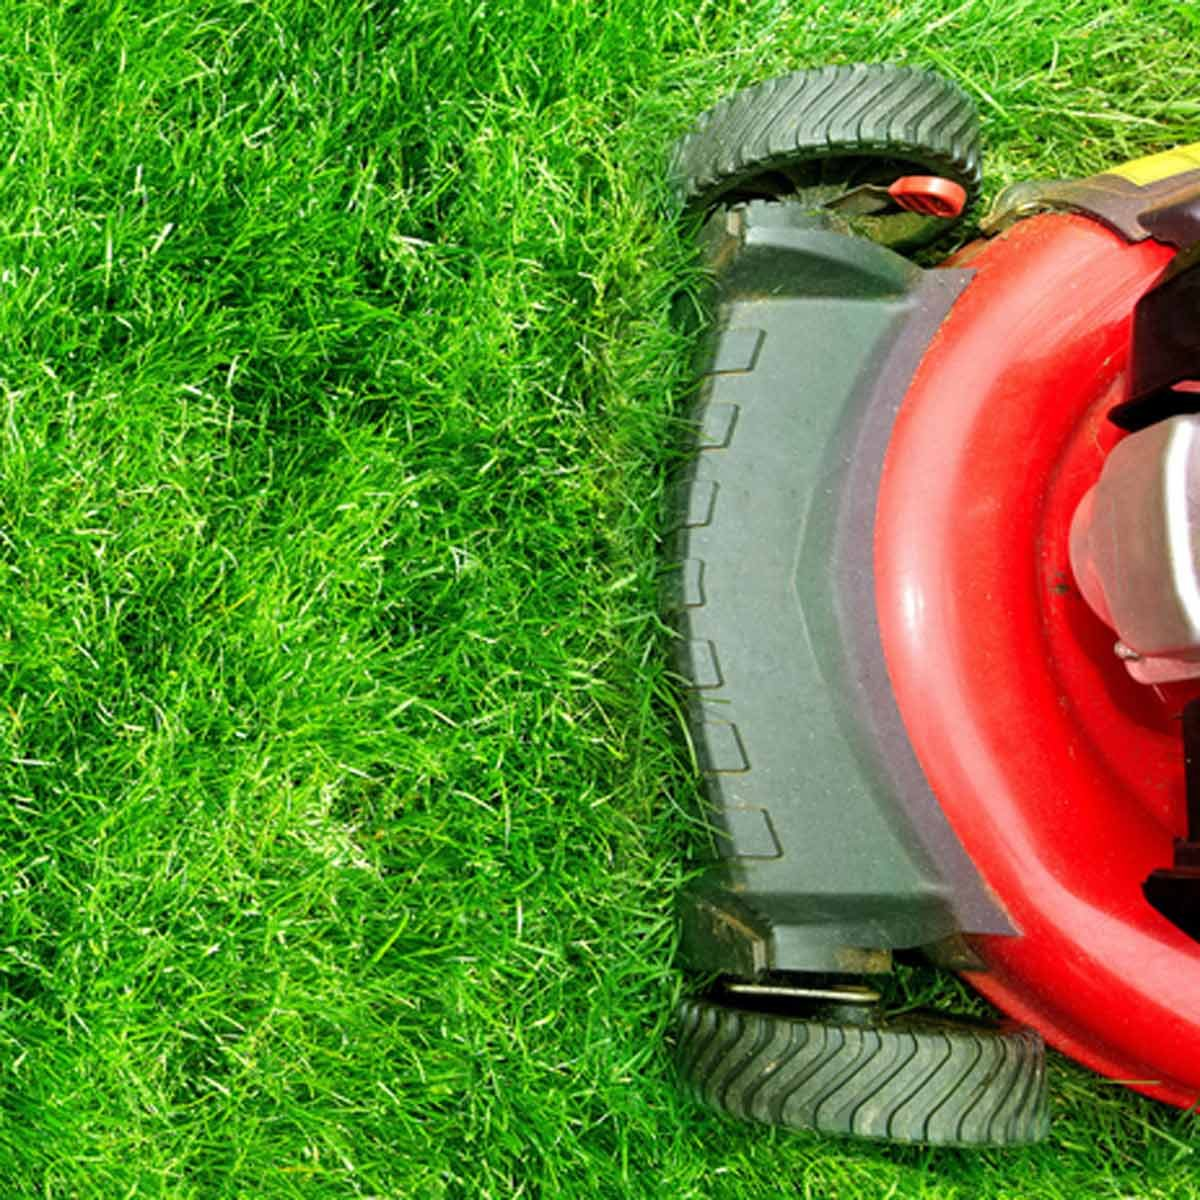 shutterstock_269014973 lawn mower cutting grass